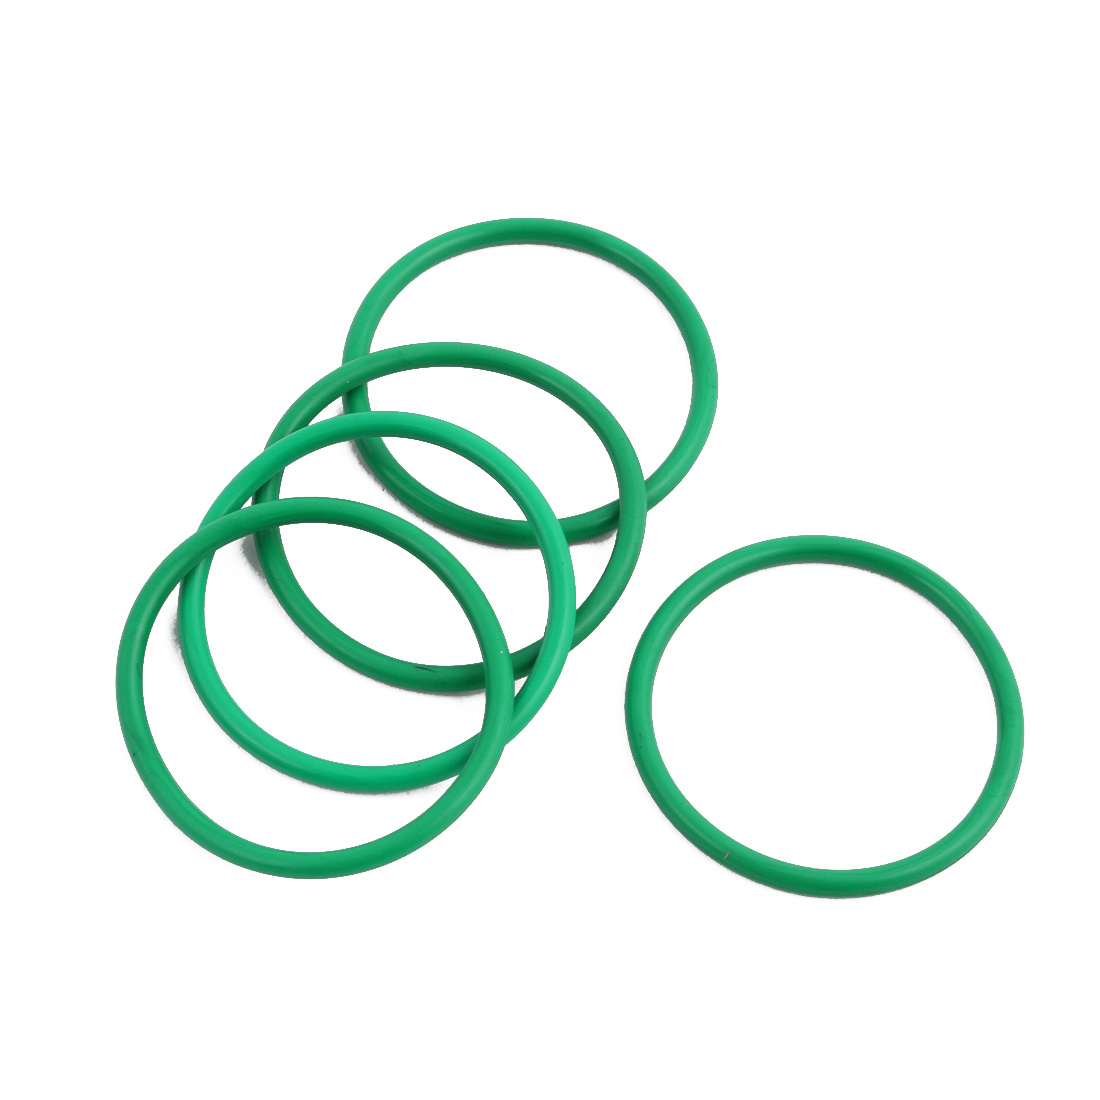 5Pcs Green 28 x 1.9mm Industrial Flexible Rubber O Ring Oil Sealing Grommets